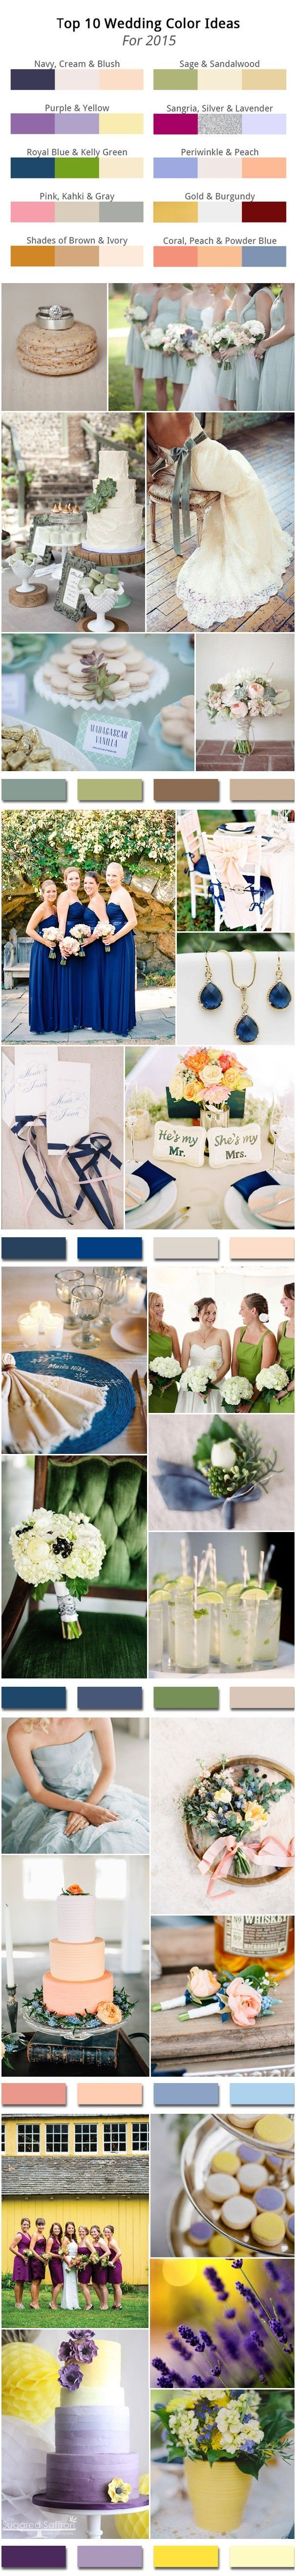 Top 10 Wedding Color Ideas for 2015 Trends #weddingcolors bad ass just more of a confessed now lol.